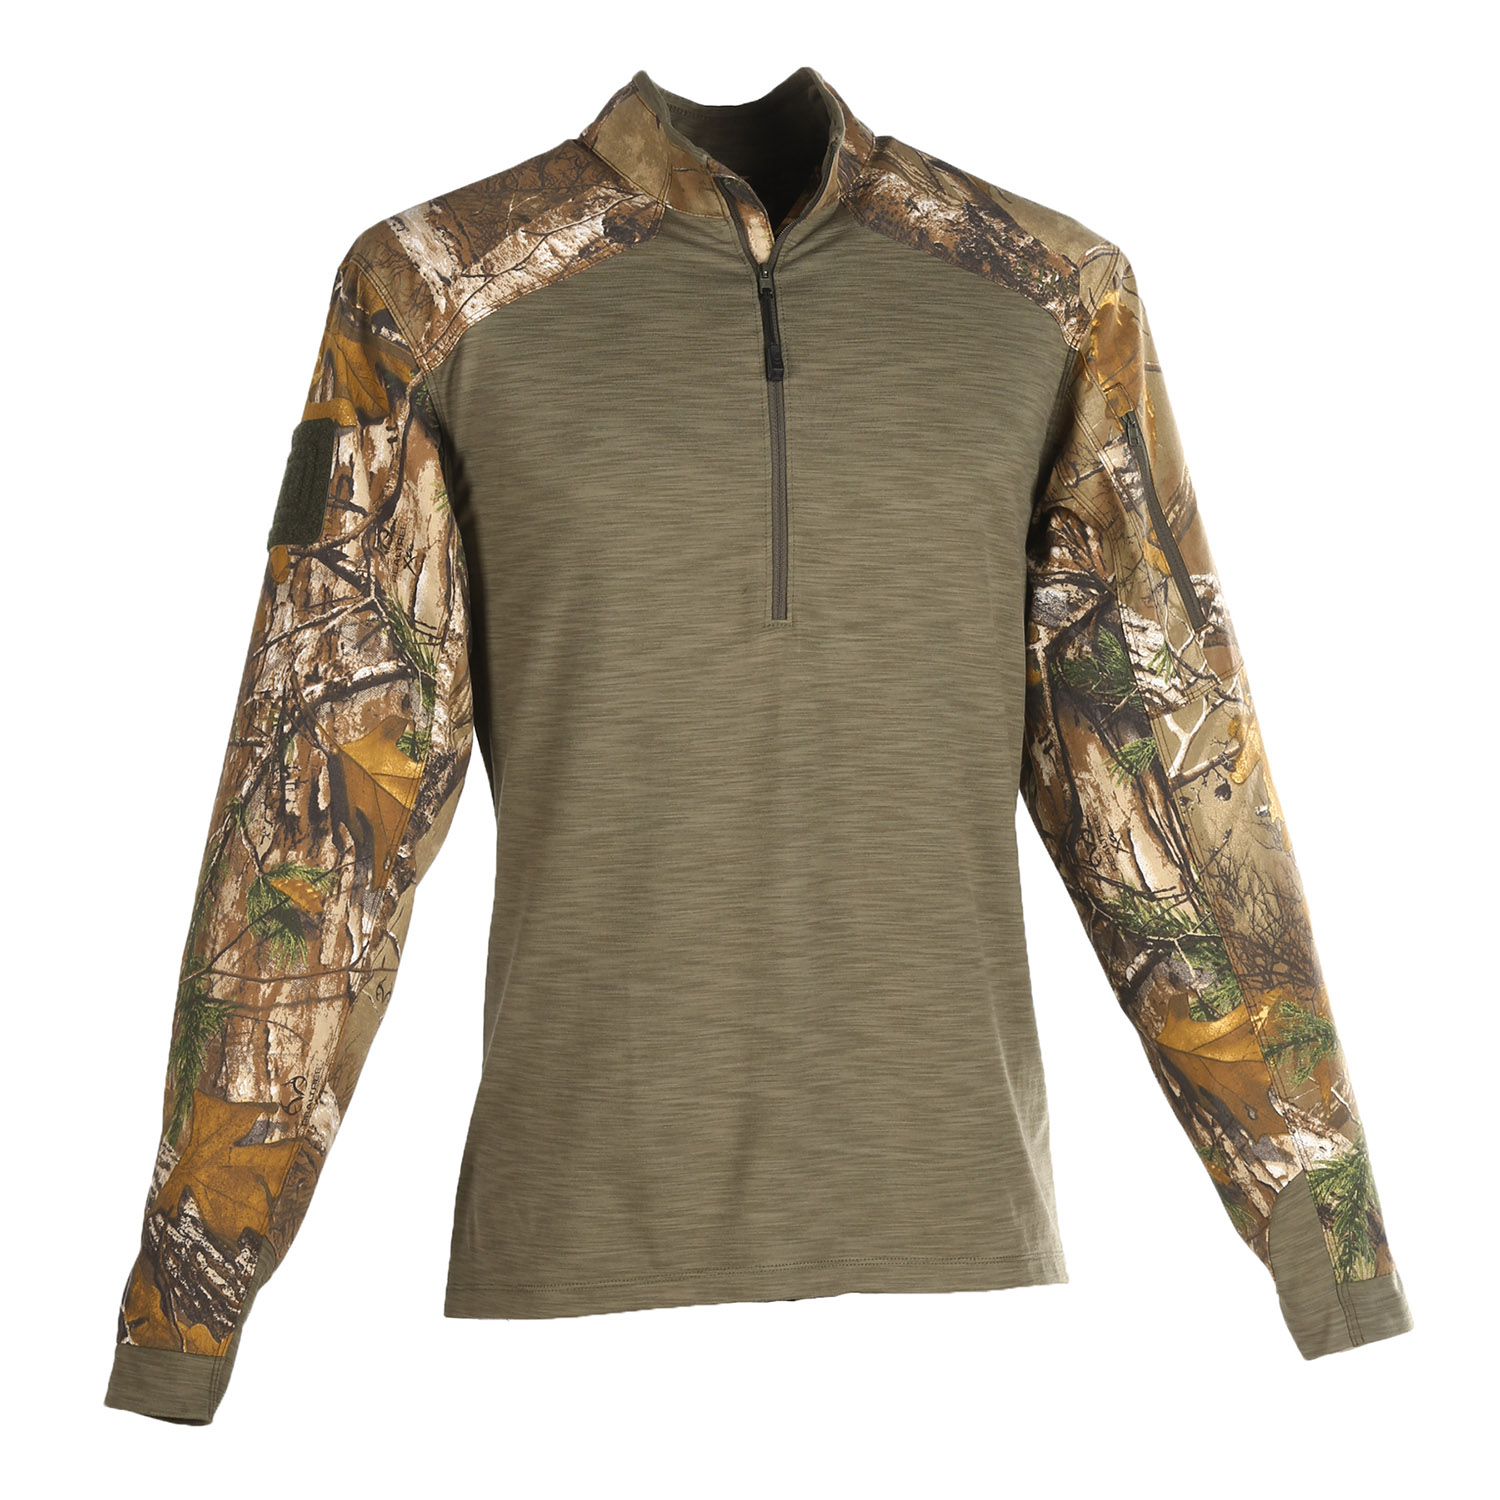 5.11 Tactical Realtree Rapid Response Quarter Zip Shirt